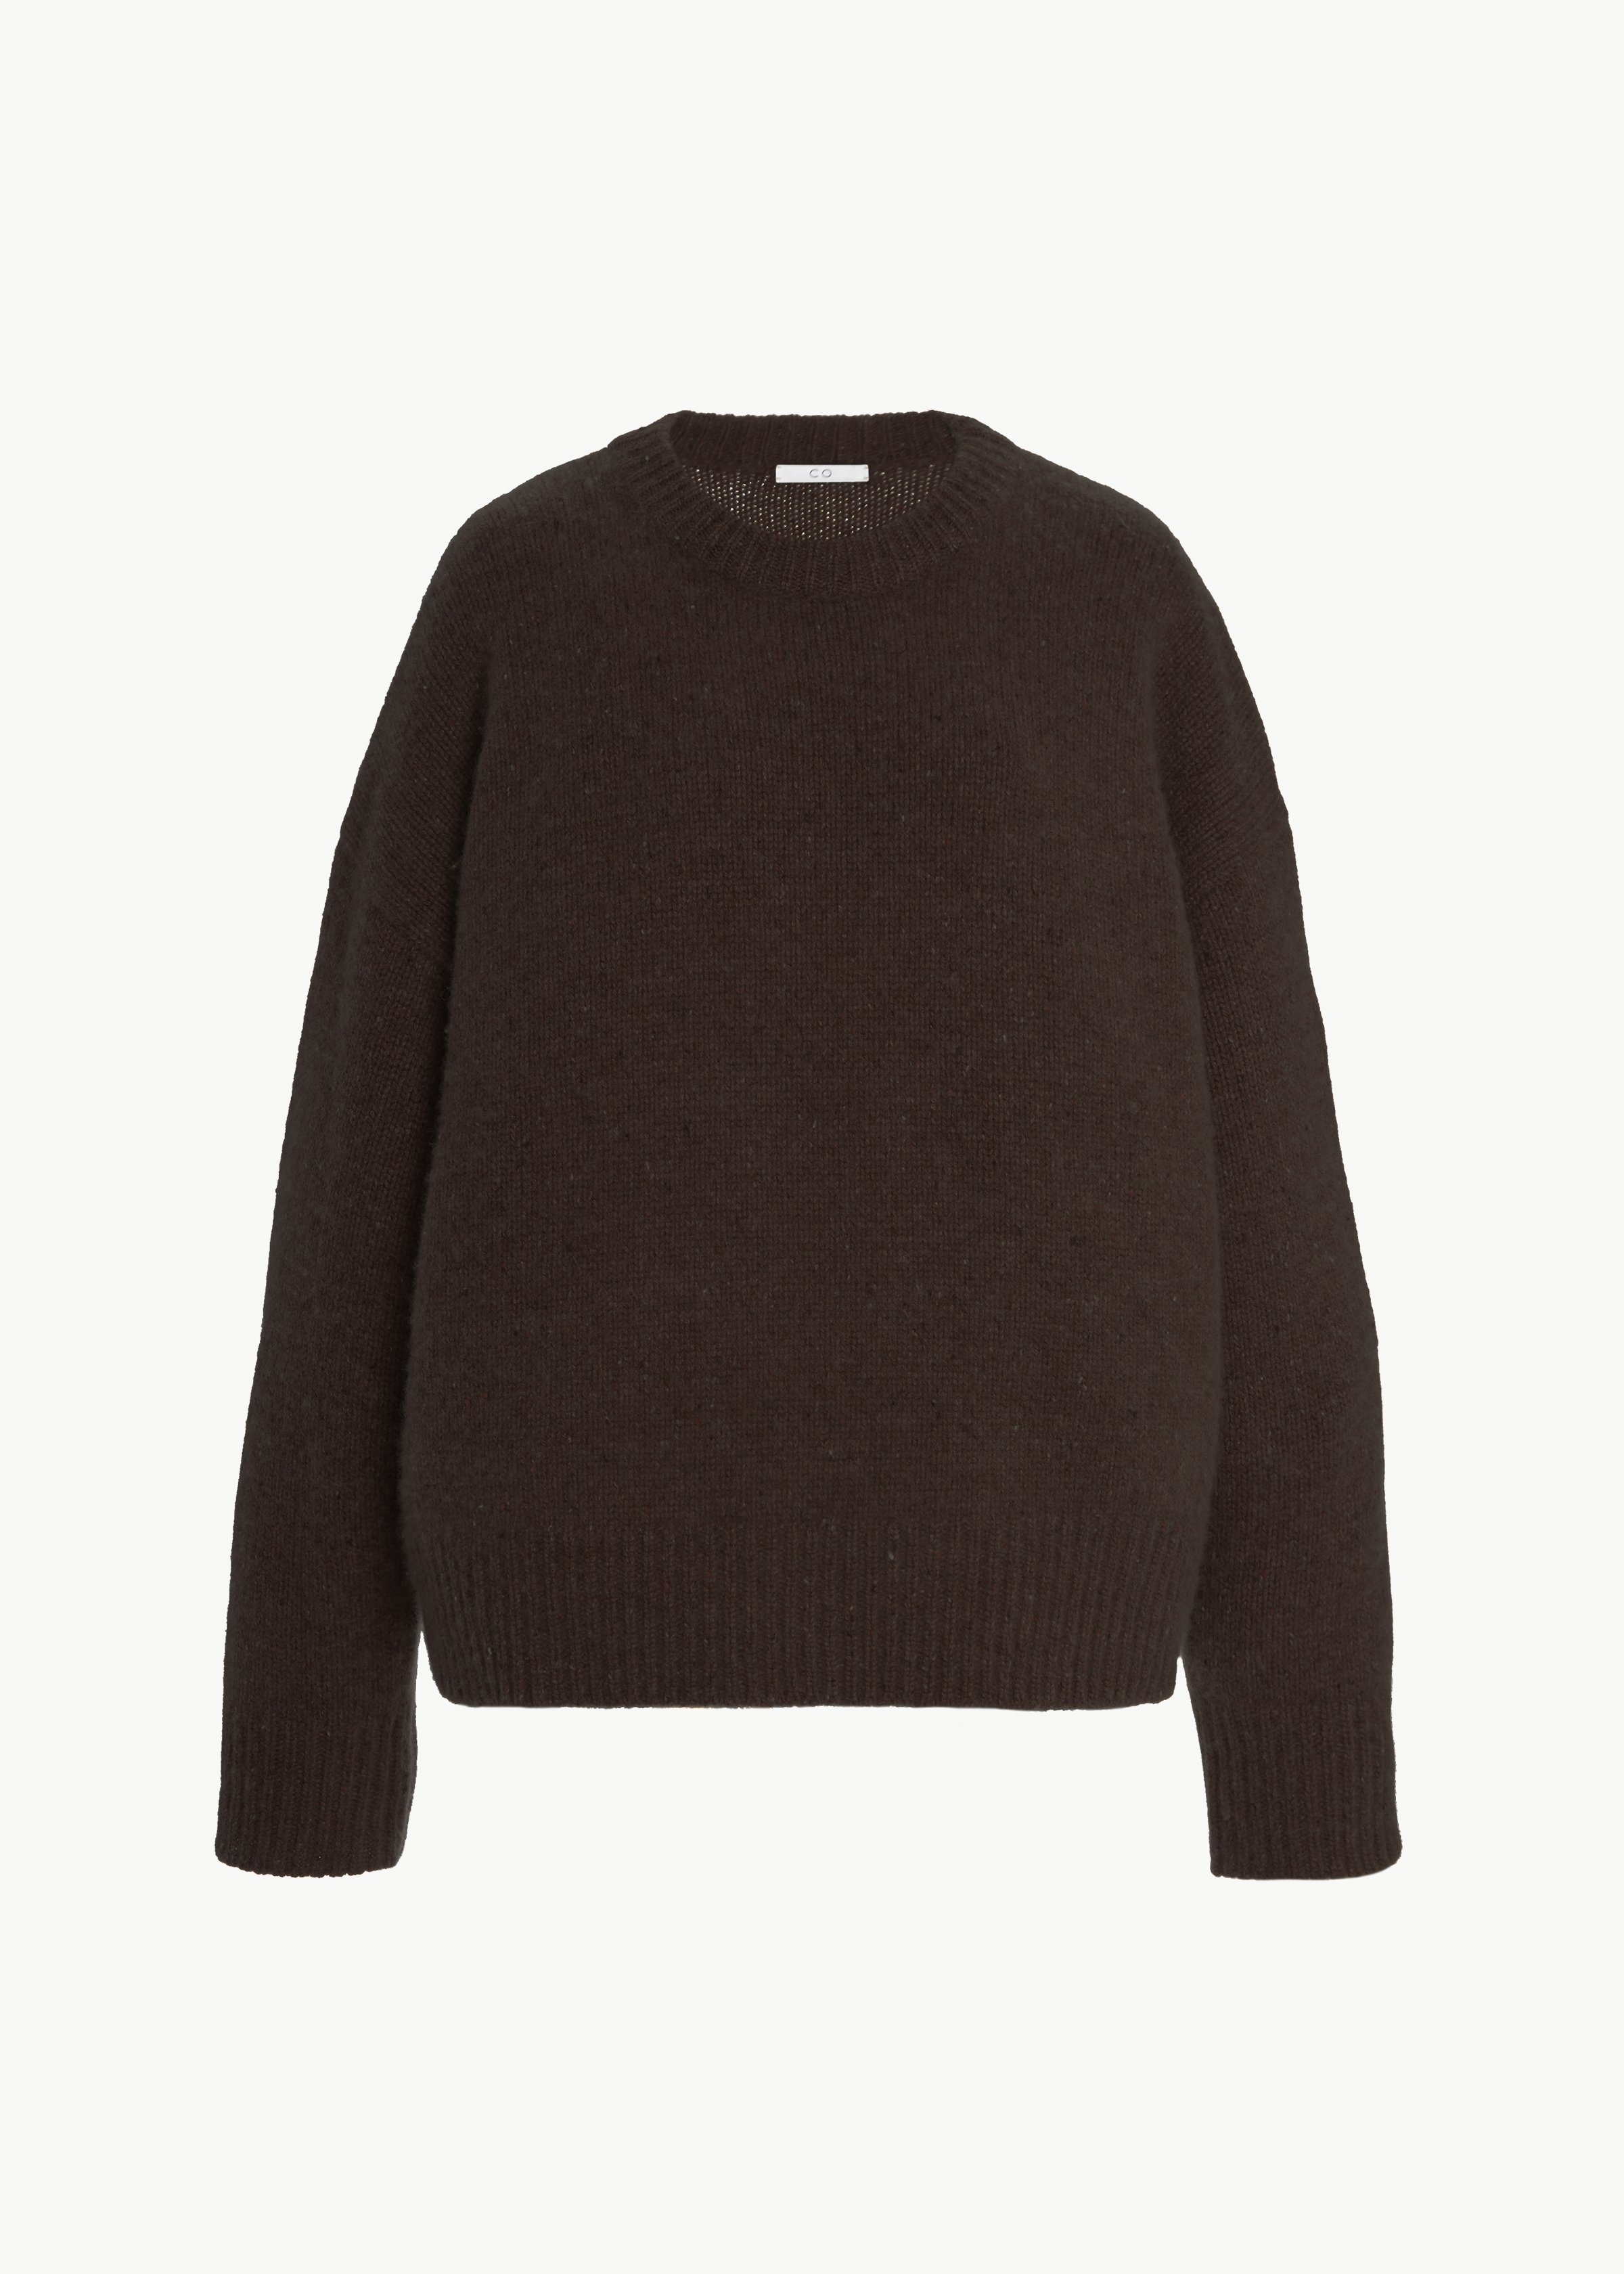 Crew Neck Sweater in Cashmere - Chestnut in Umber Melange by Co Collections